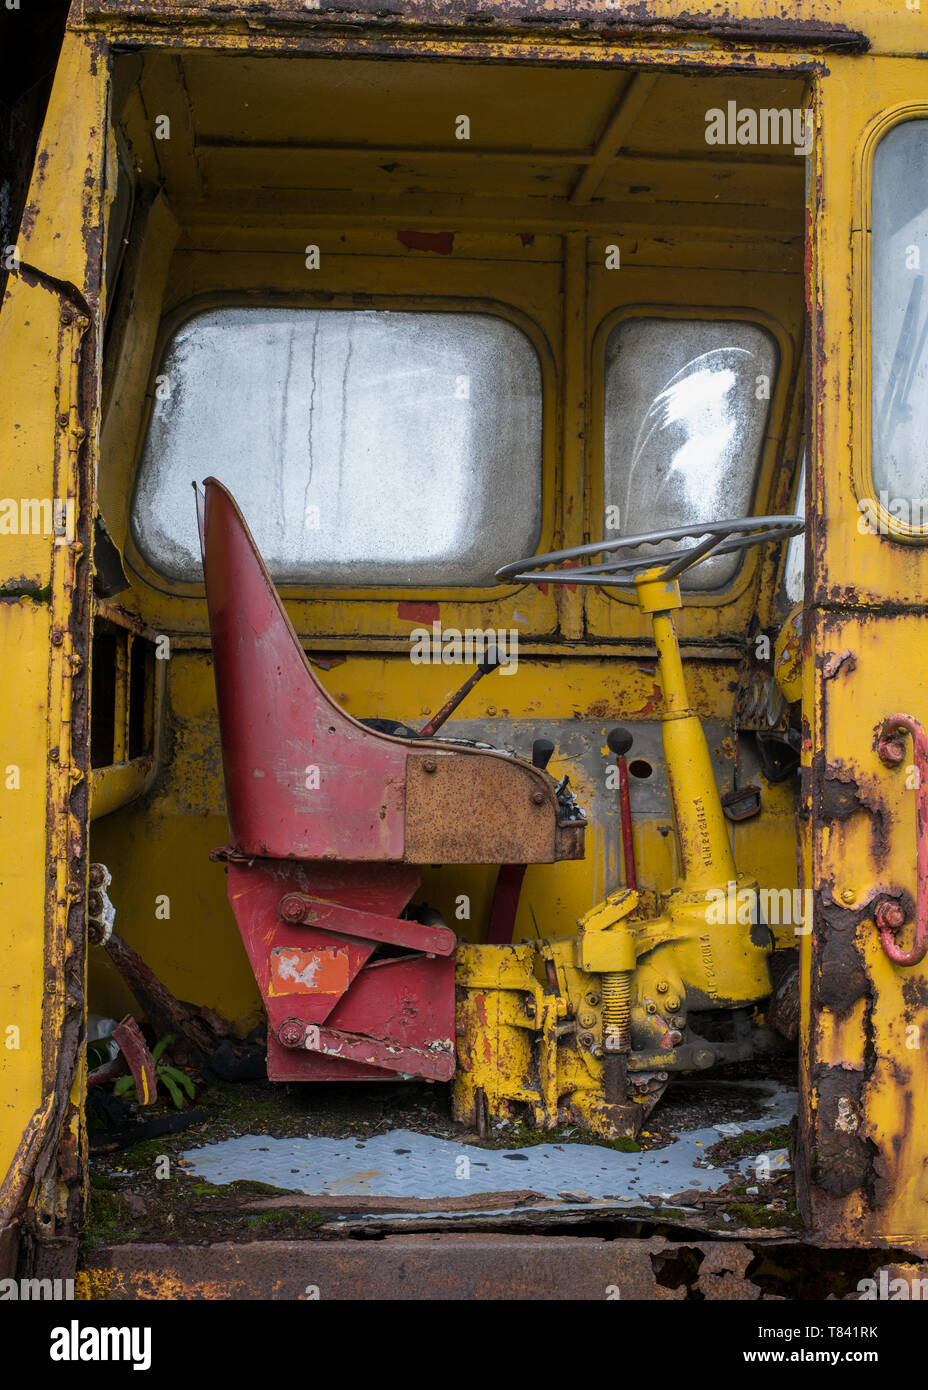 The cabin section of an old, rusting, abandoned heavy lifting crane at the Mining Museum, Lake District, Cumbria, UK - Stock Image